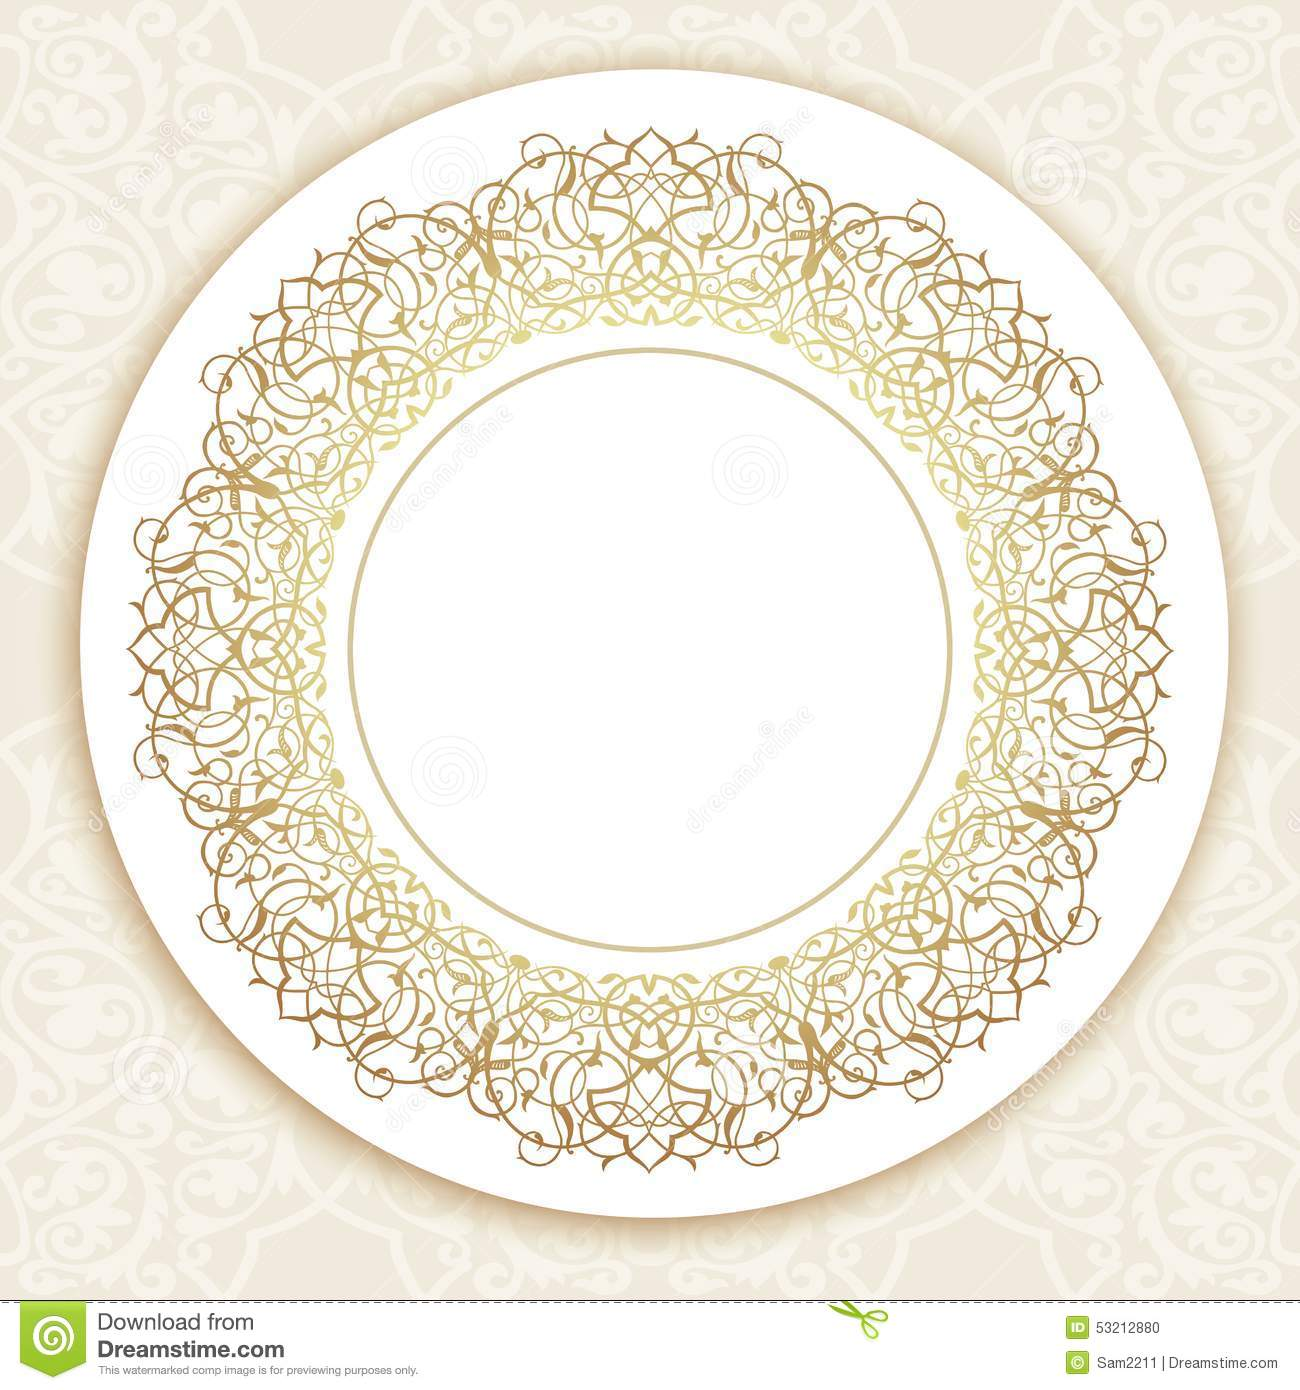 Vector Ornate Round Border In Eastern Style. Stock Vector ...